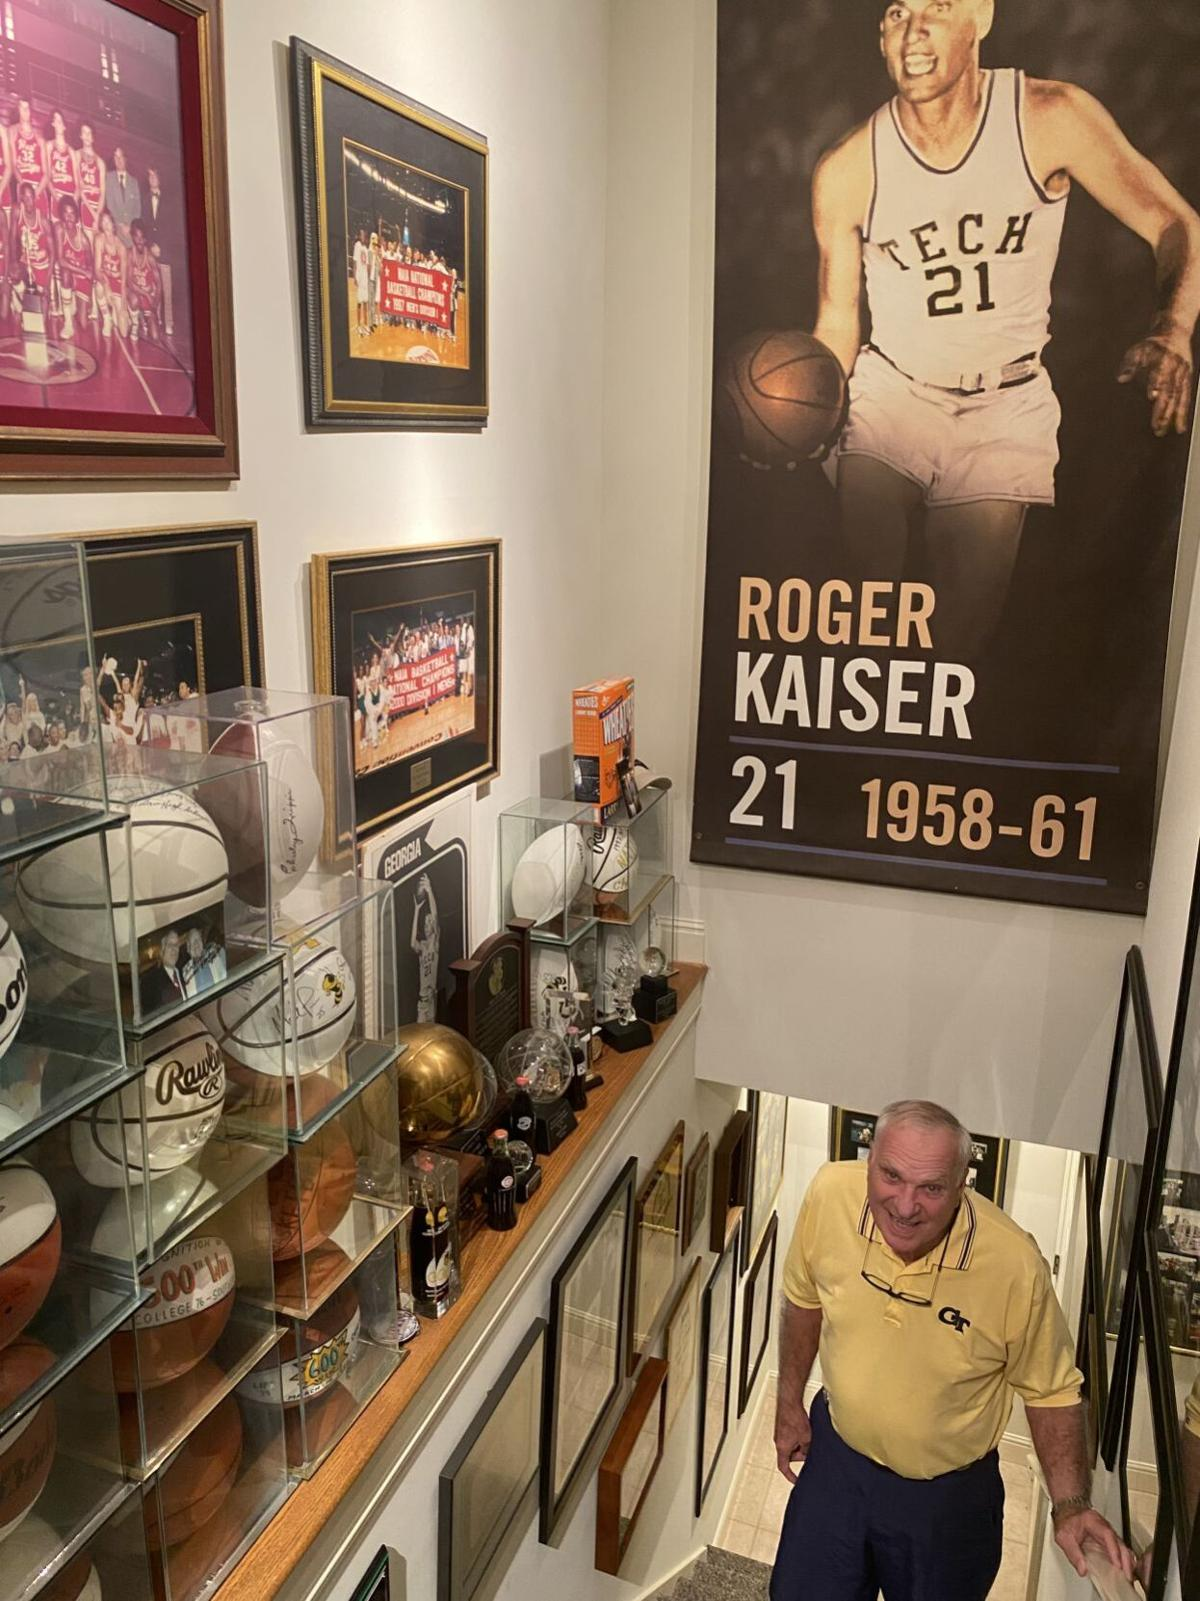 Kaiser inducted to Small College Basketball Hall of Fame